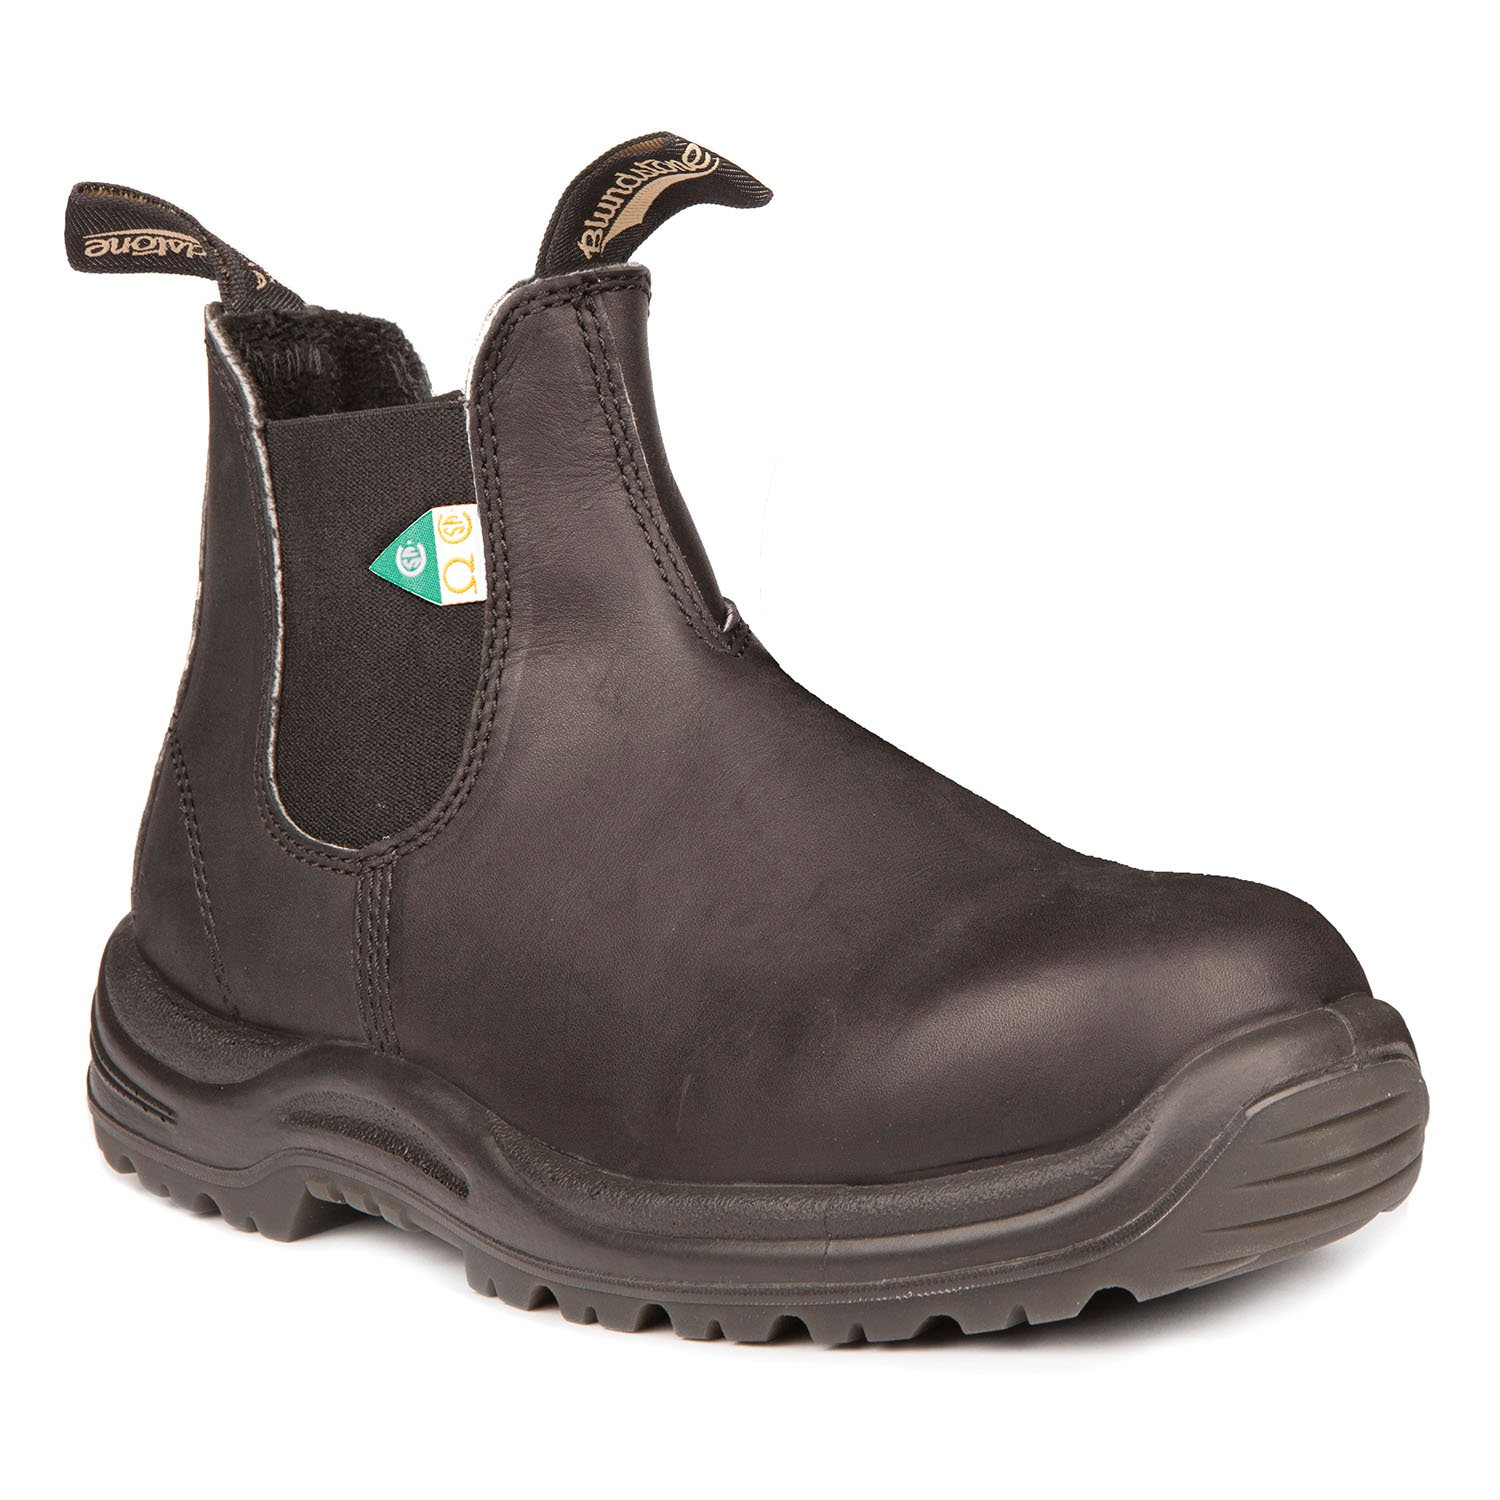 Blundstone 163 - Work & Safety Boot Black-Blundstone